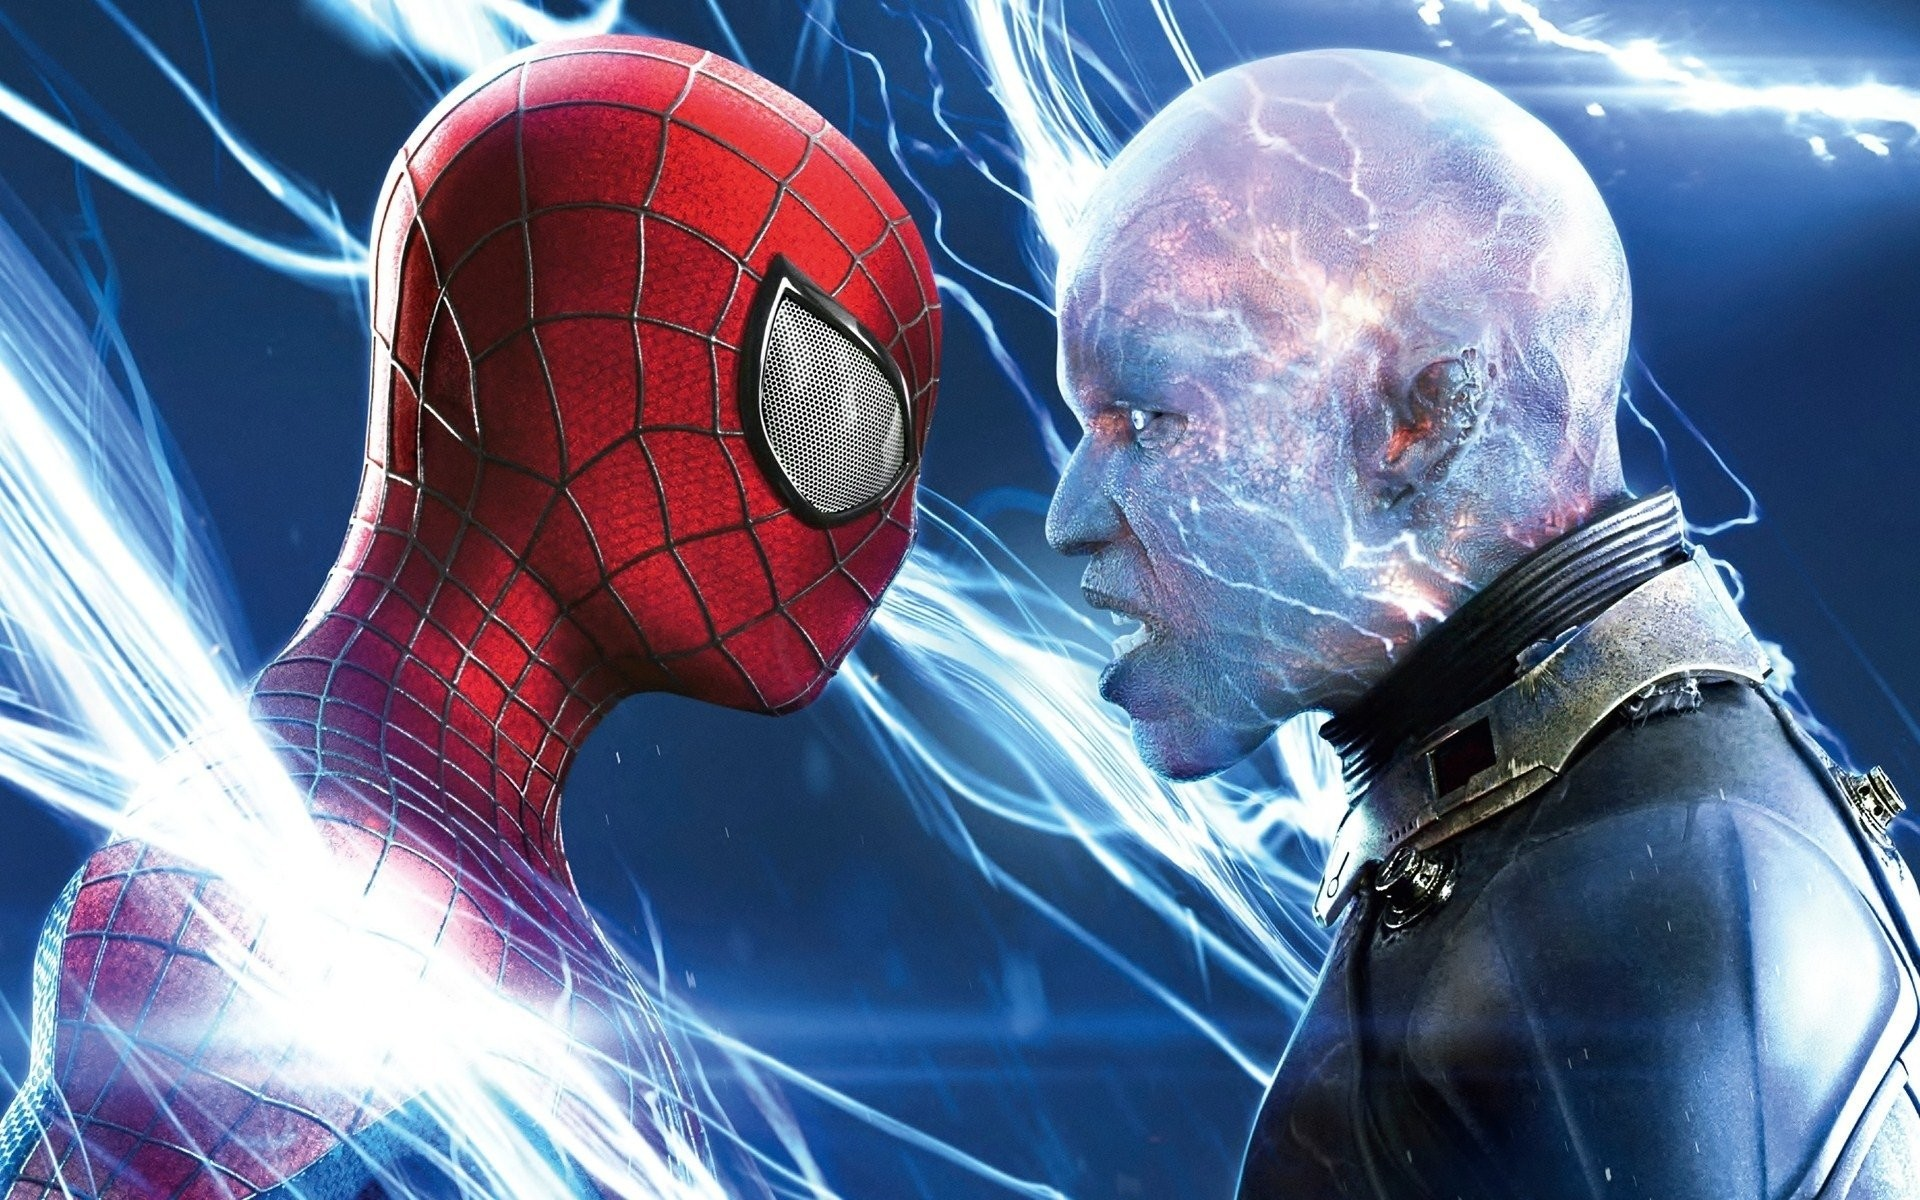 The Amazing SpiderMan HD Wallpapers Backgrounds | HD Wallpapers | Pinterest  | Amazing spider, Man wallpaper and Wallpaper